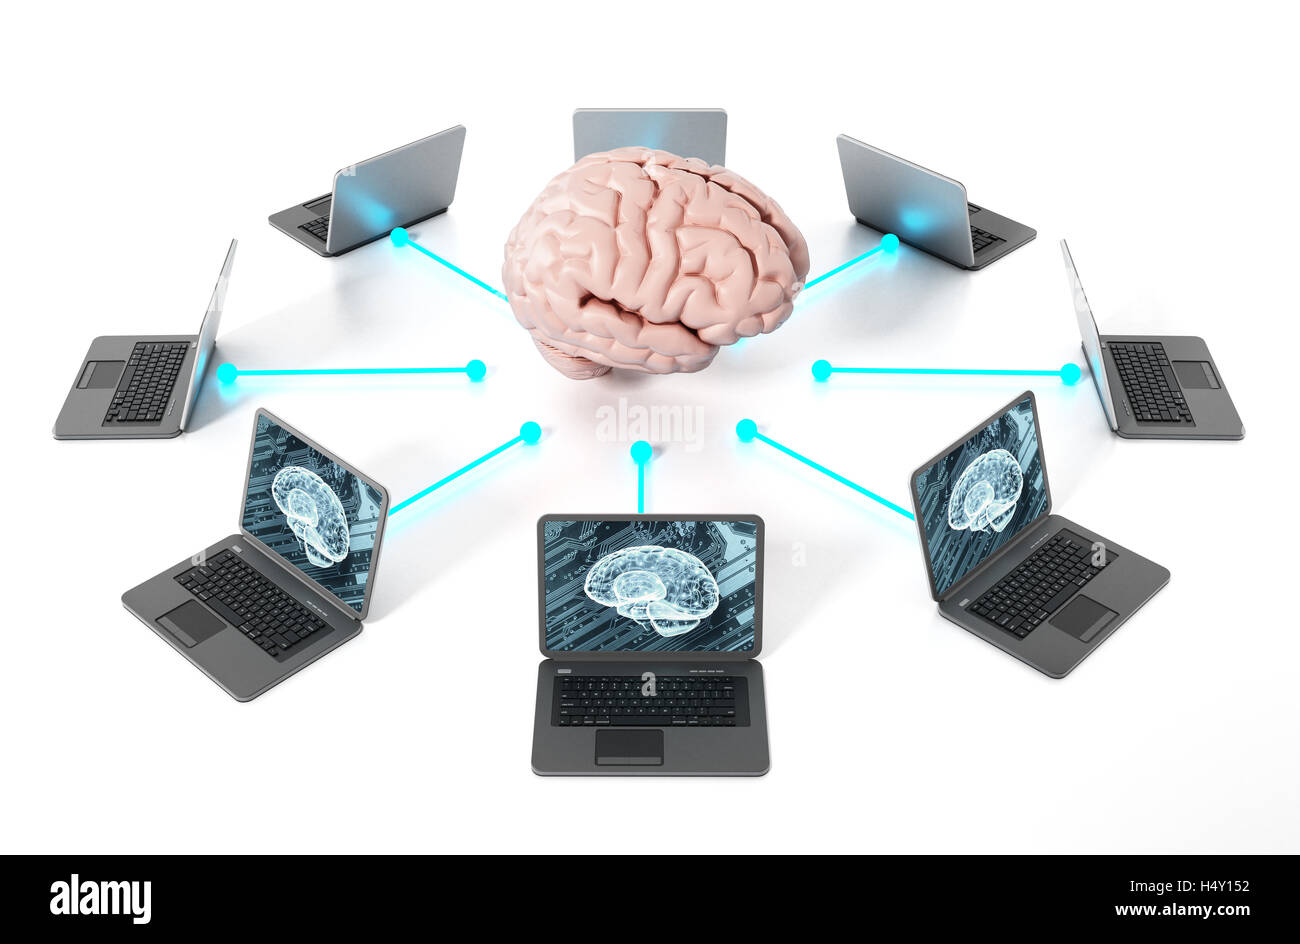 Brain connected to the laptop computers. 3D illustration. - Stock Image